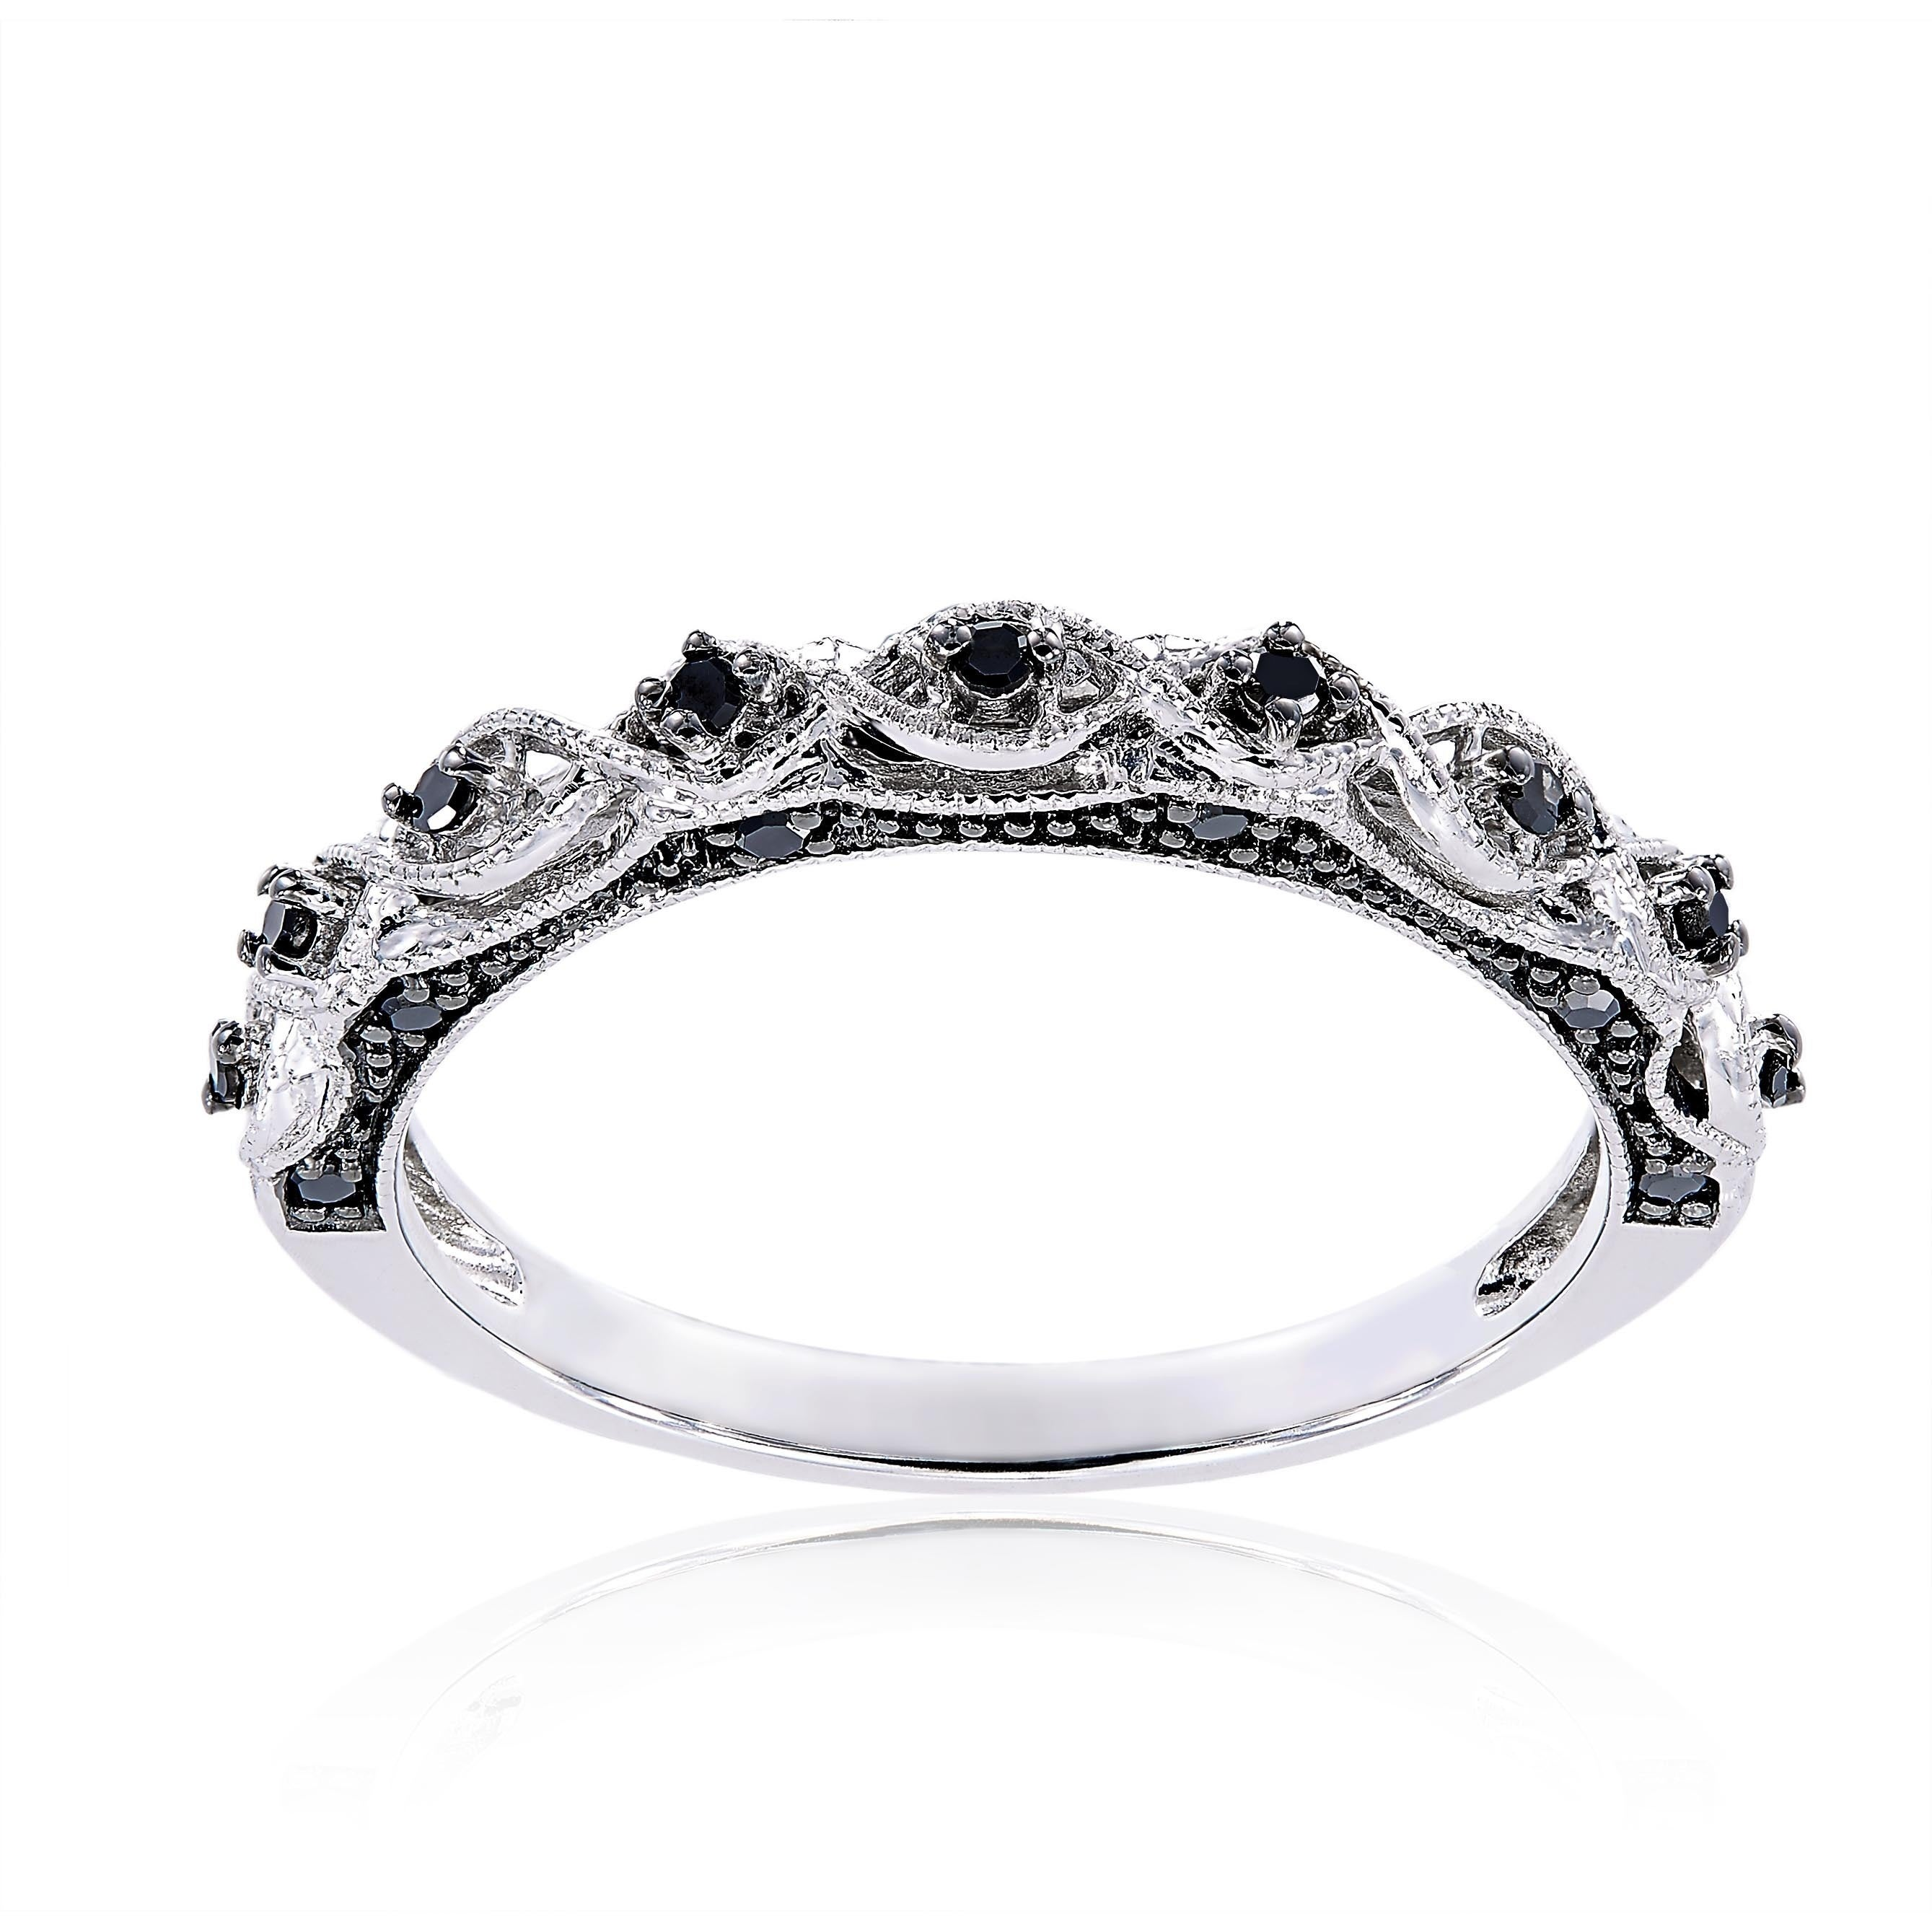 today product unique white jewelry ctw shipping ring men overstock mens bands jewelonfire in free silver black sterling s tdw diamond watches